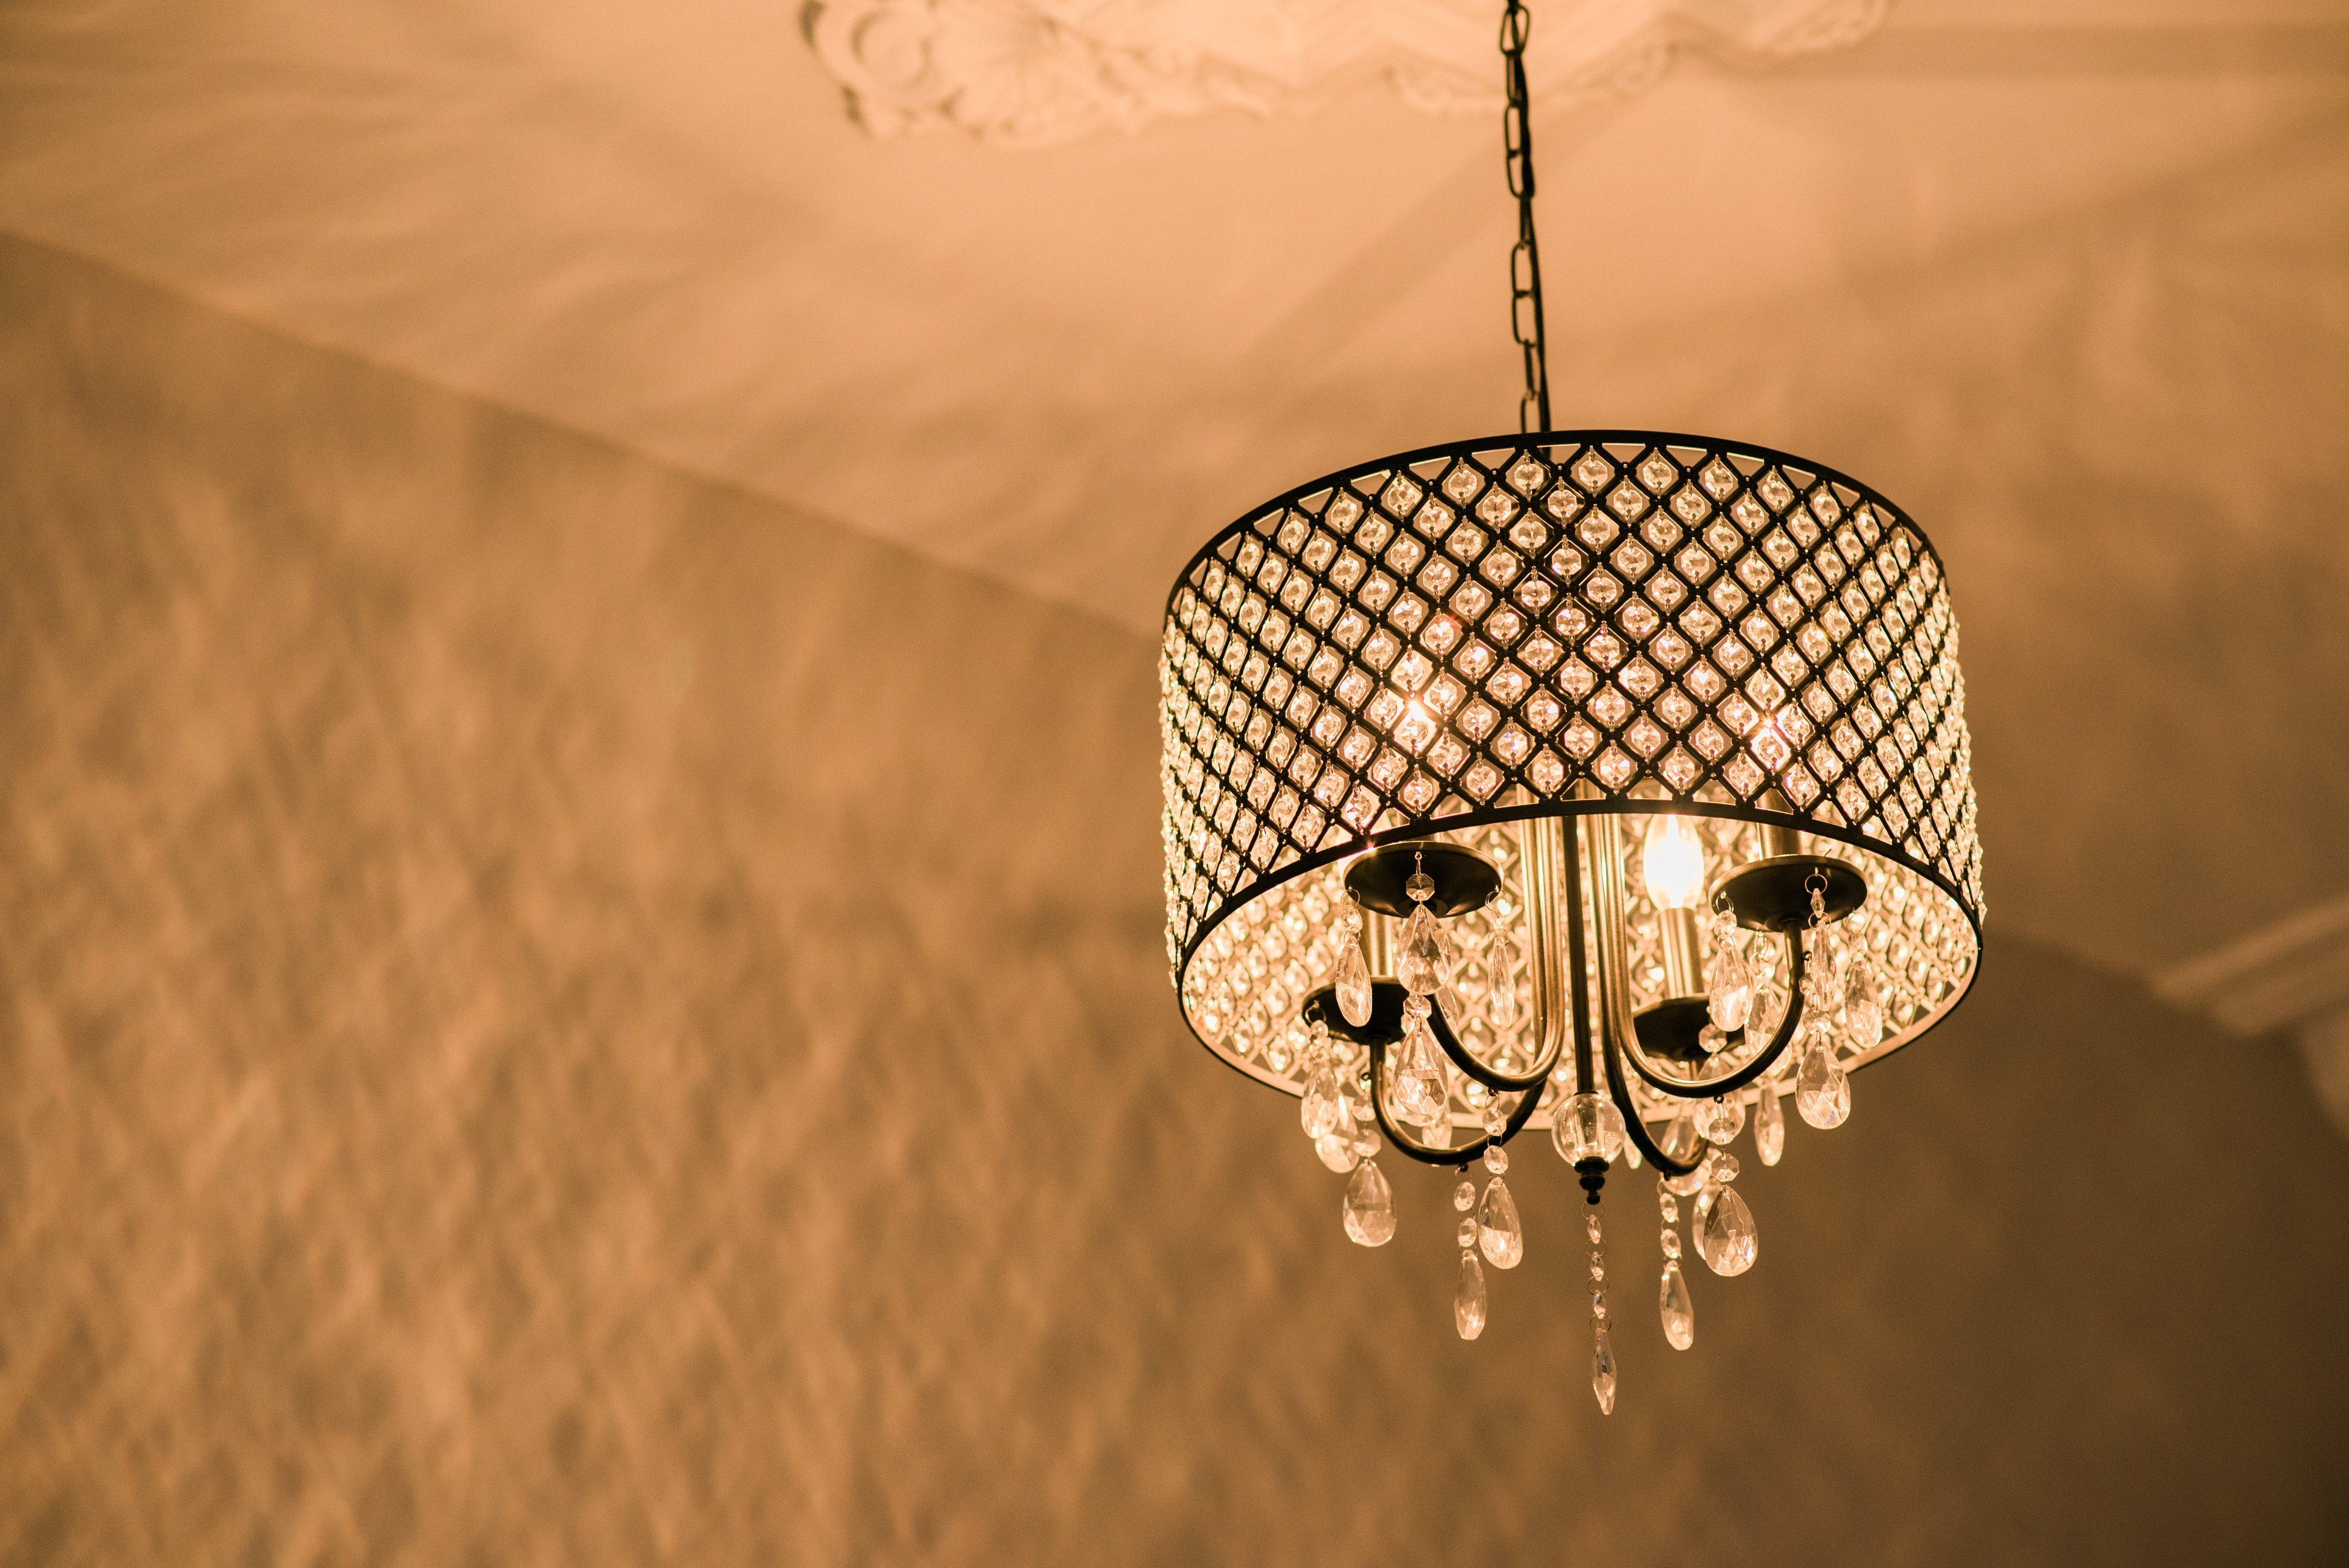 Photo of the chandelier in Harpster apartment